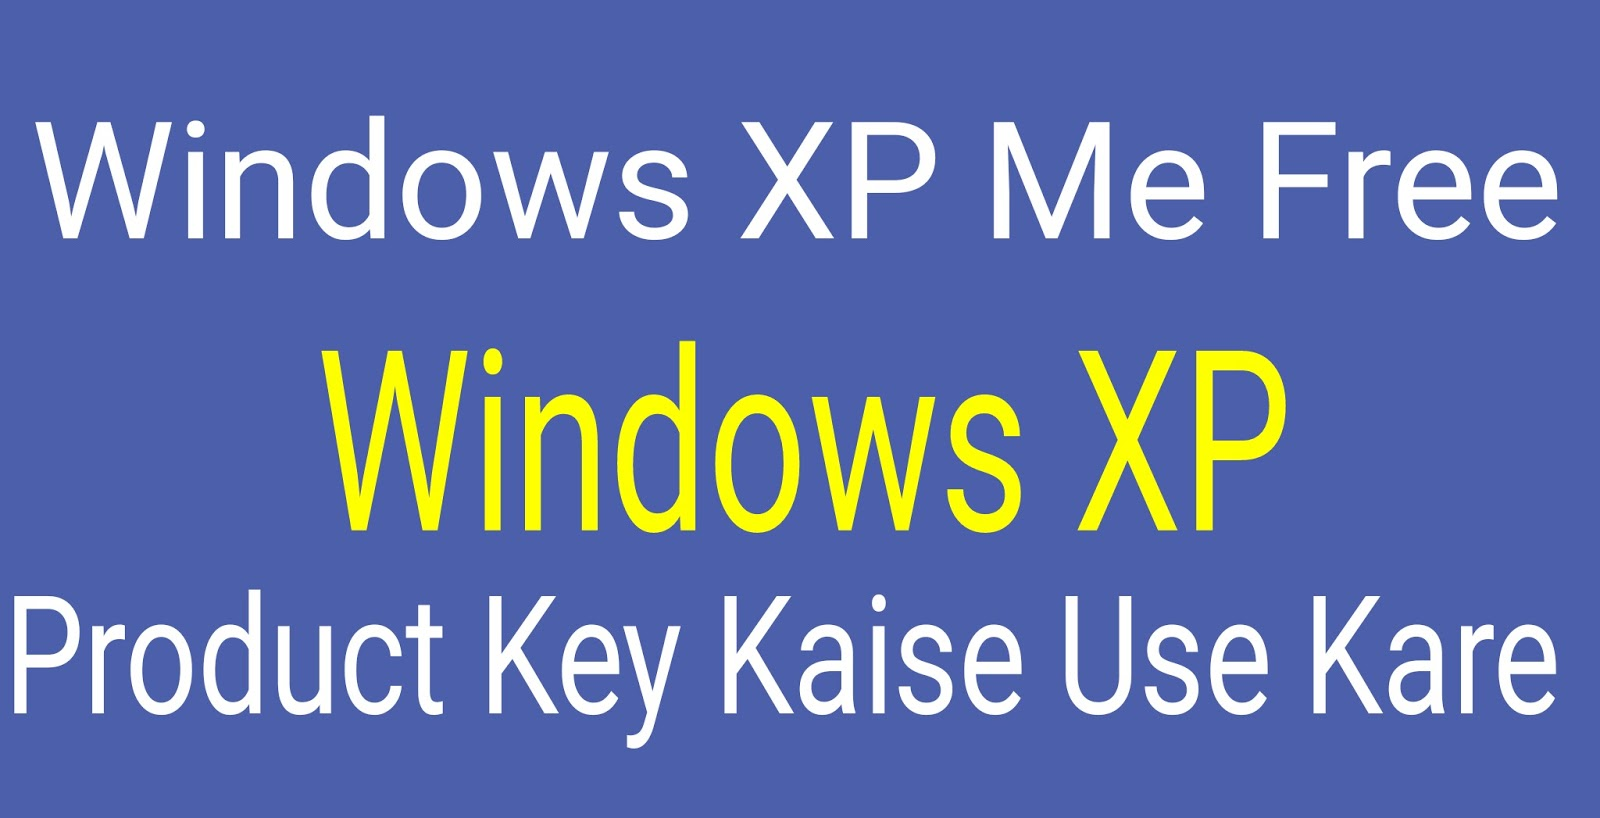 Windows-XP-Me-Free-Product-Key-Kaise-Use-Kare